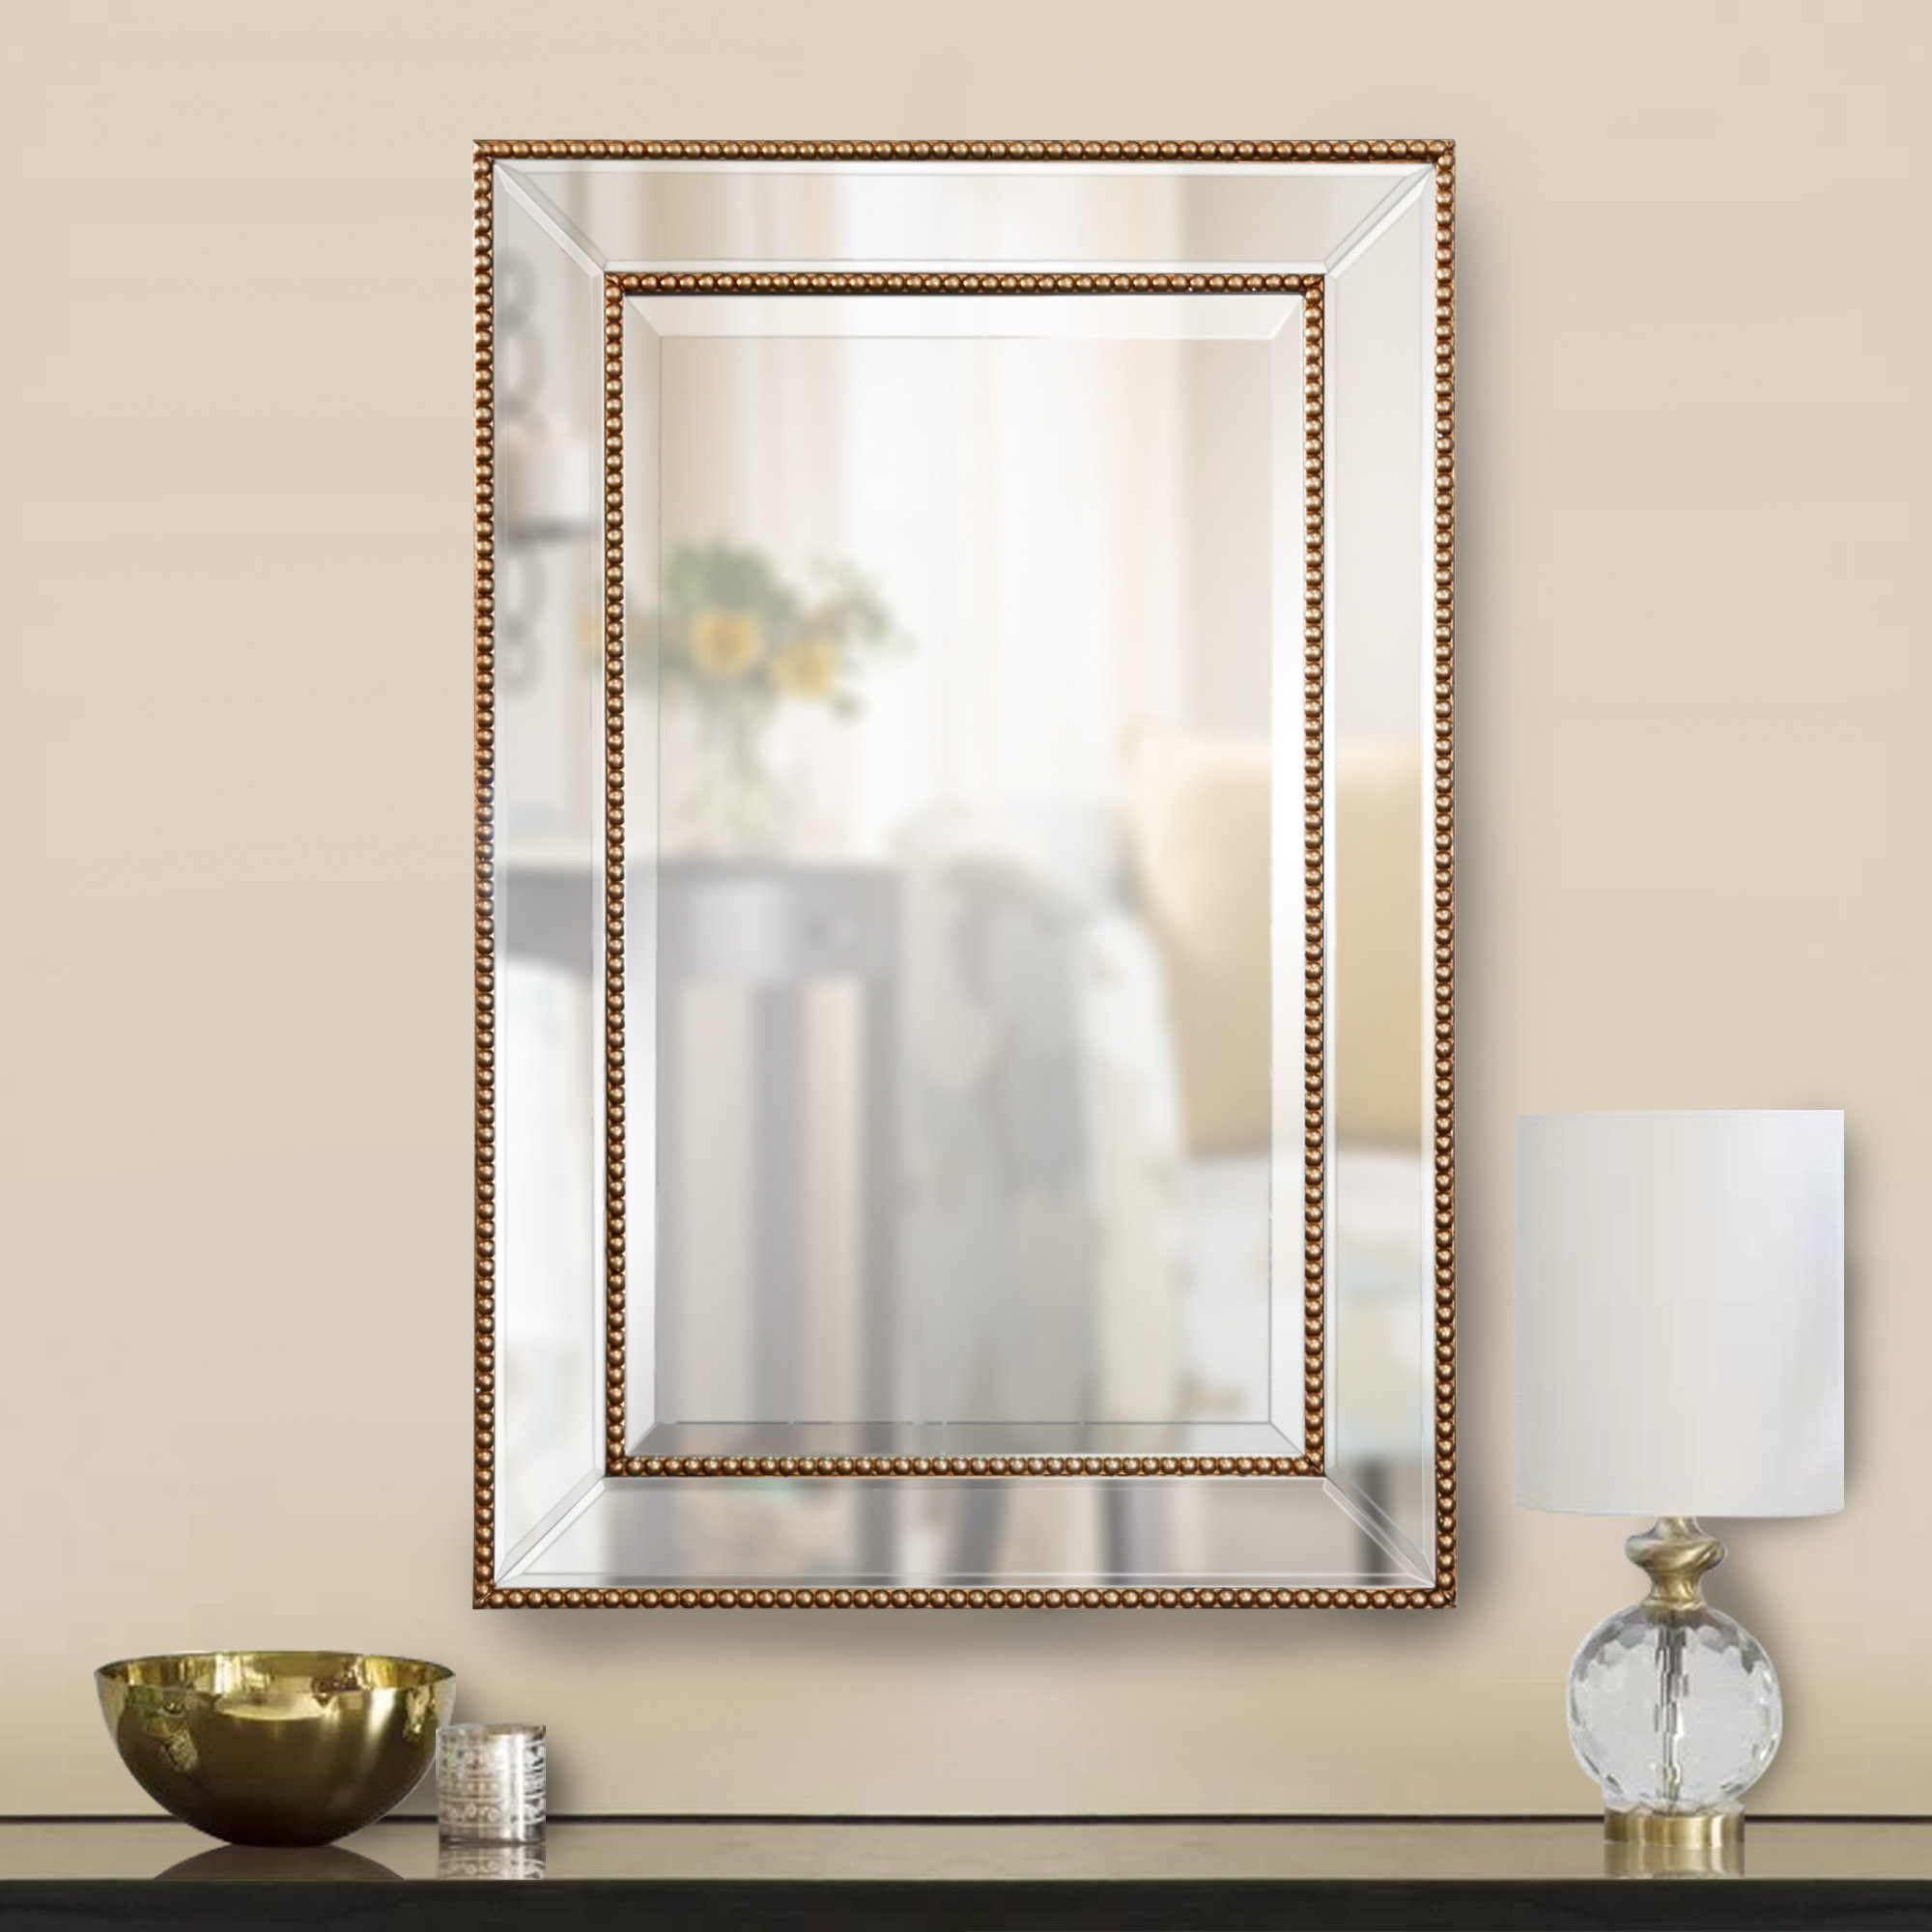 Clarine Beaded Wall Mirror Within Lake Park Beveled Beaded Accent Wall Mirrors (View 11 of 30)